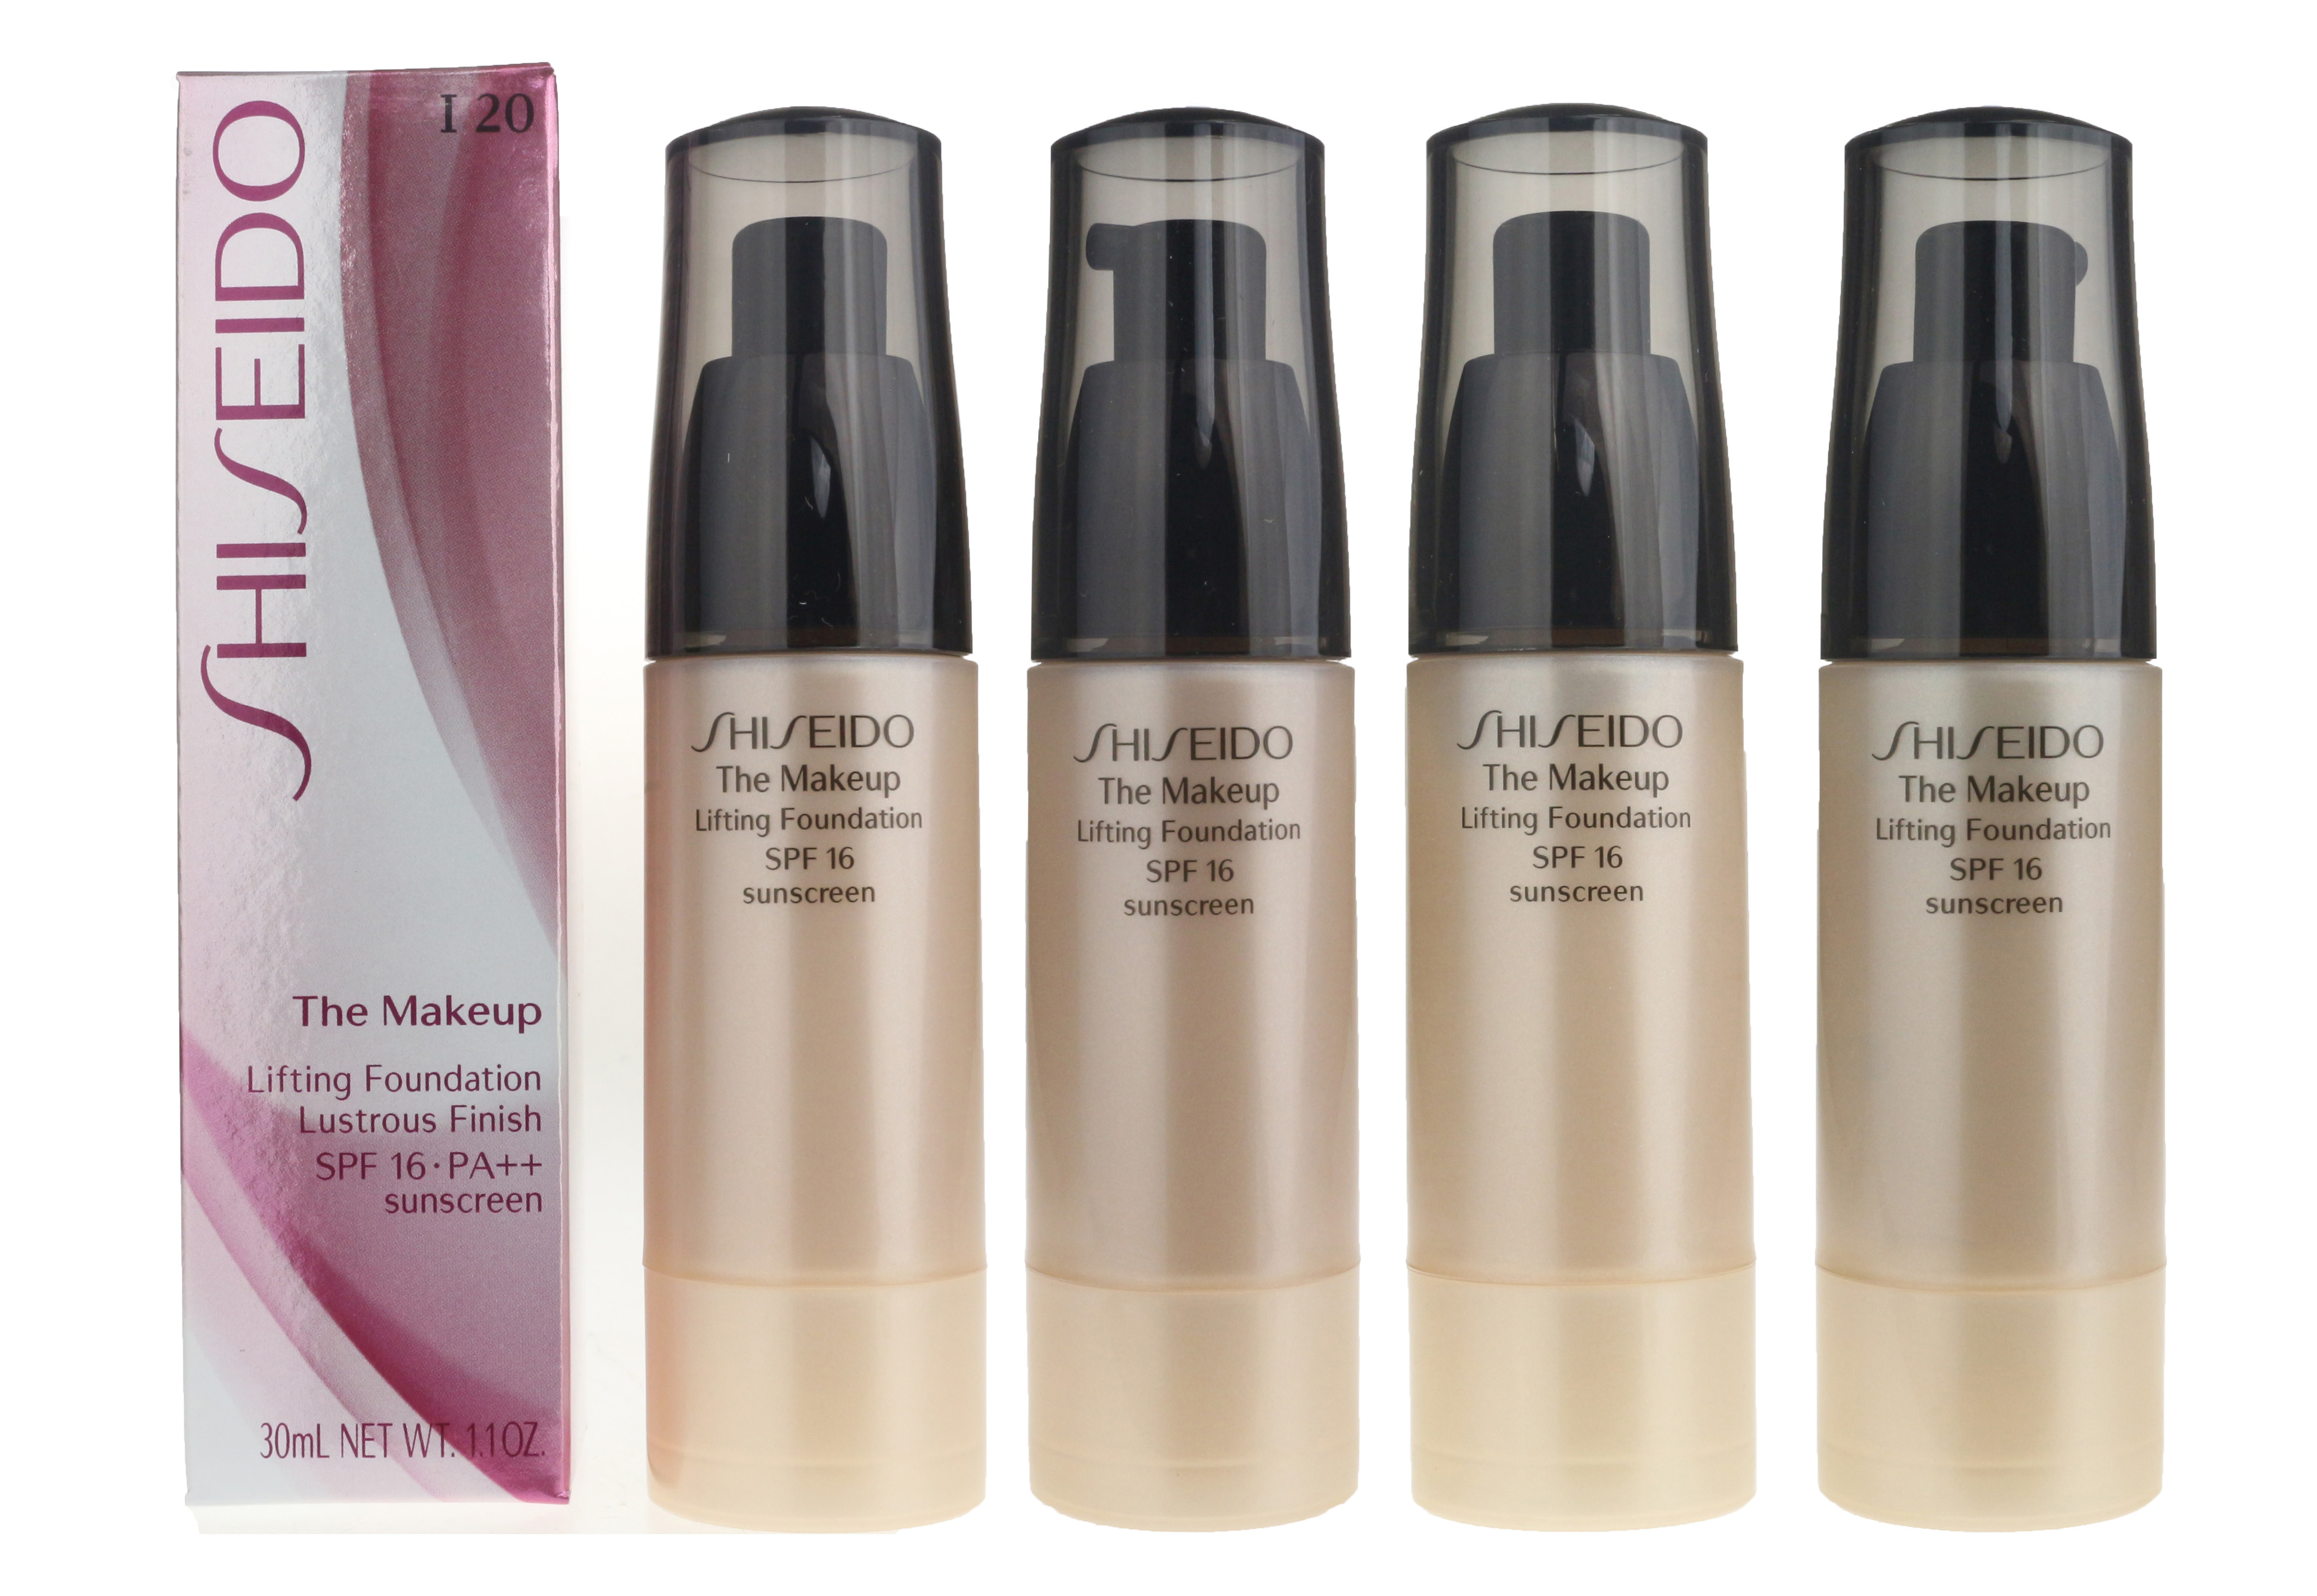 Shiseido The Makeup Lifting Foundation I20 Natural Light Ivory 1 1oz New In Box